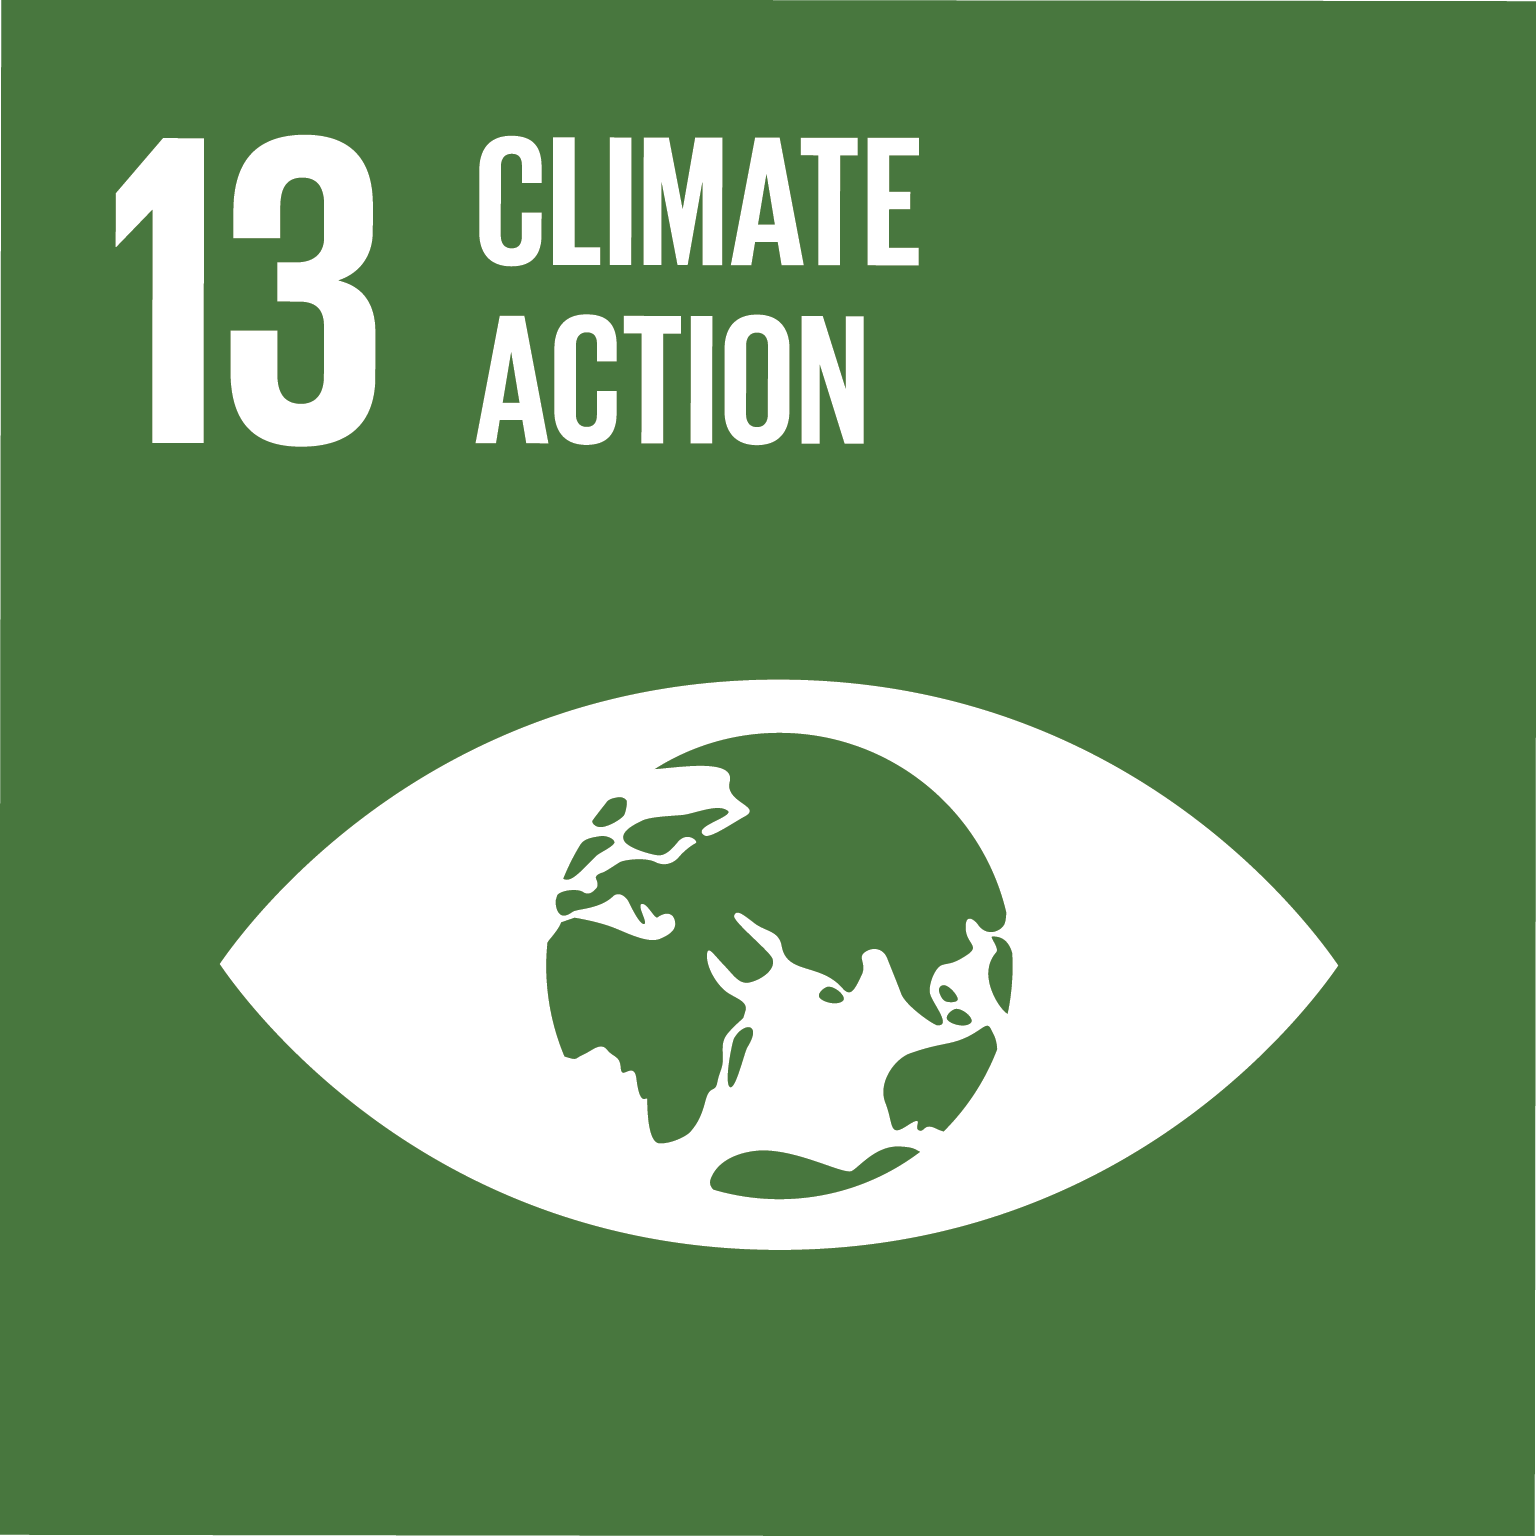 Goal 13 - Climate Change